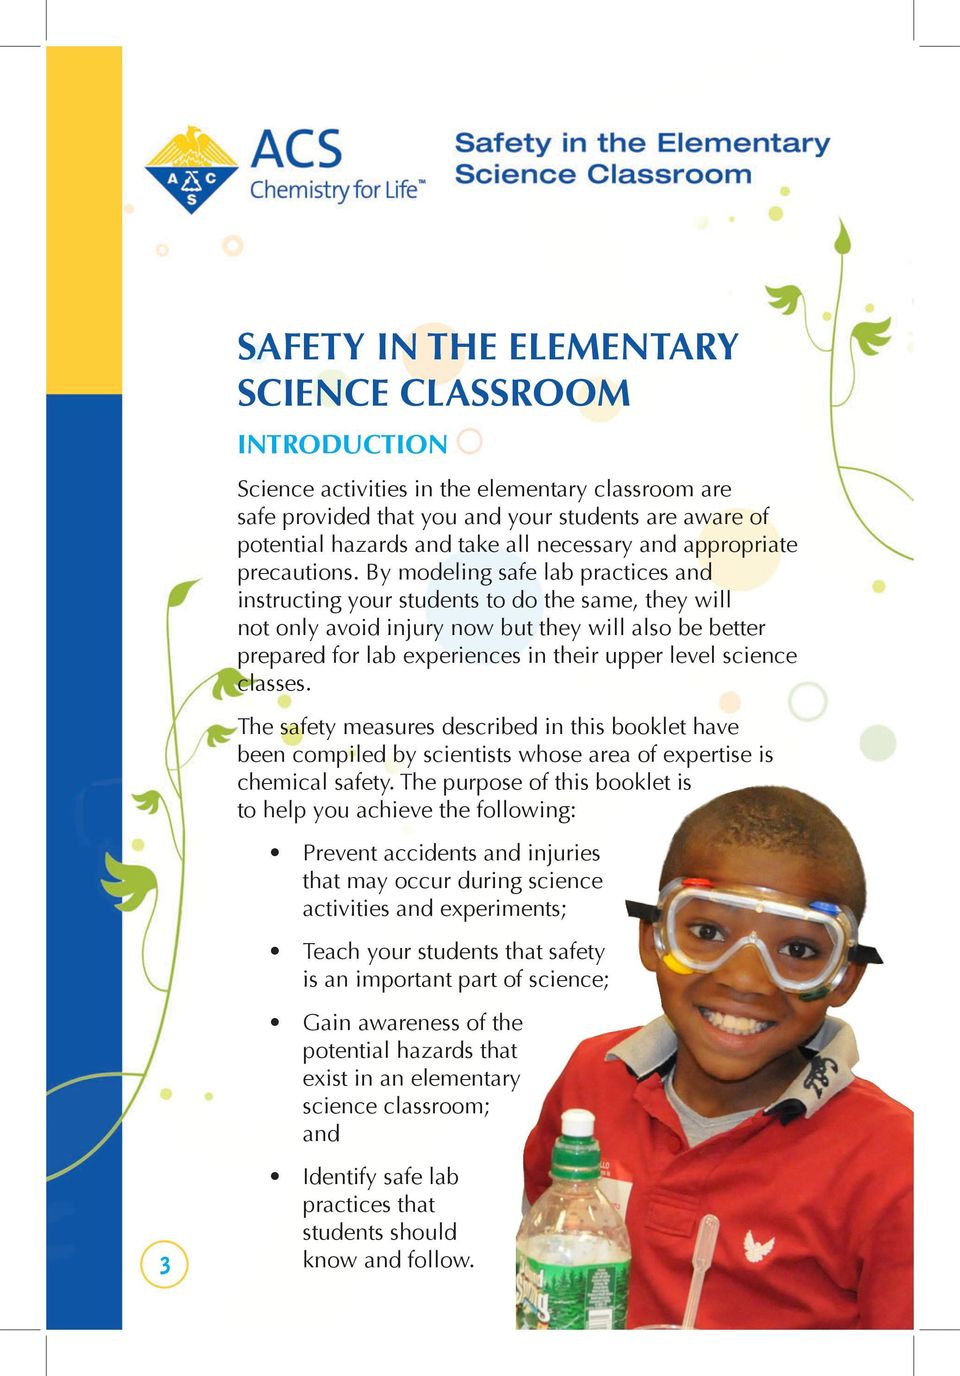 By modeling safe lab practices and instructing your students to do the same, they will not only avoid injury now but they will also be better prepared for lab experiences in their upper level science